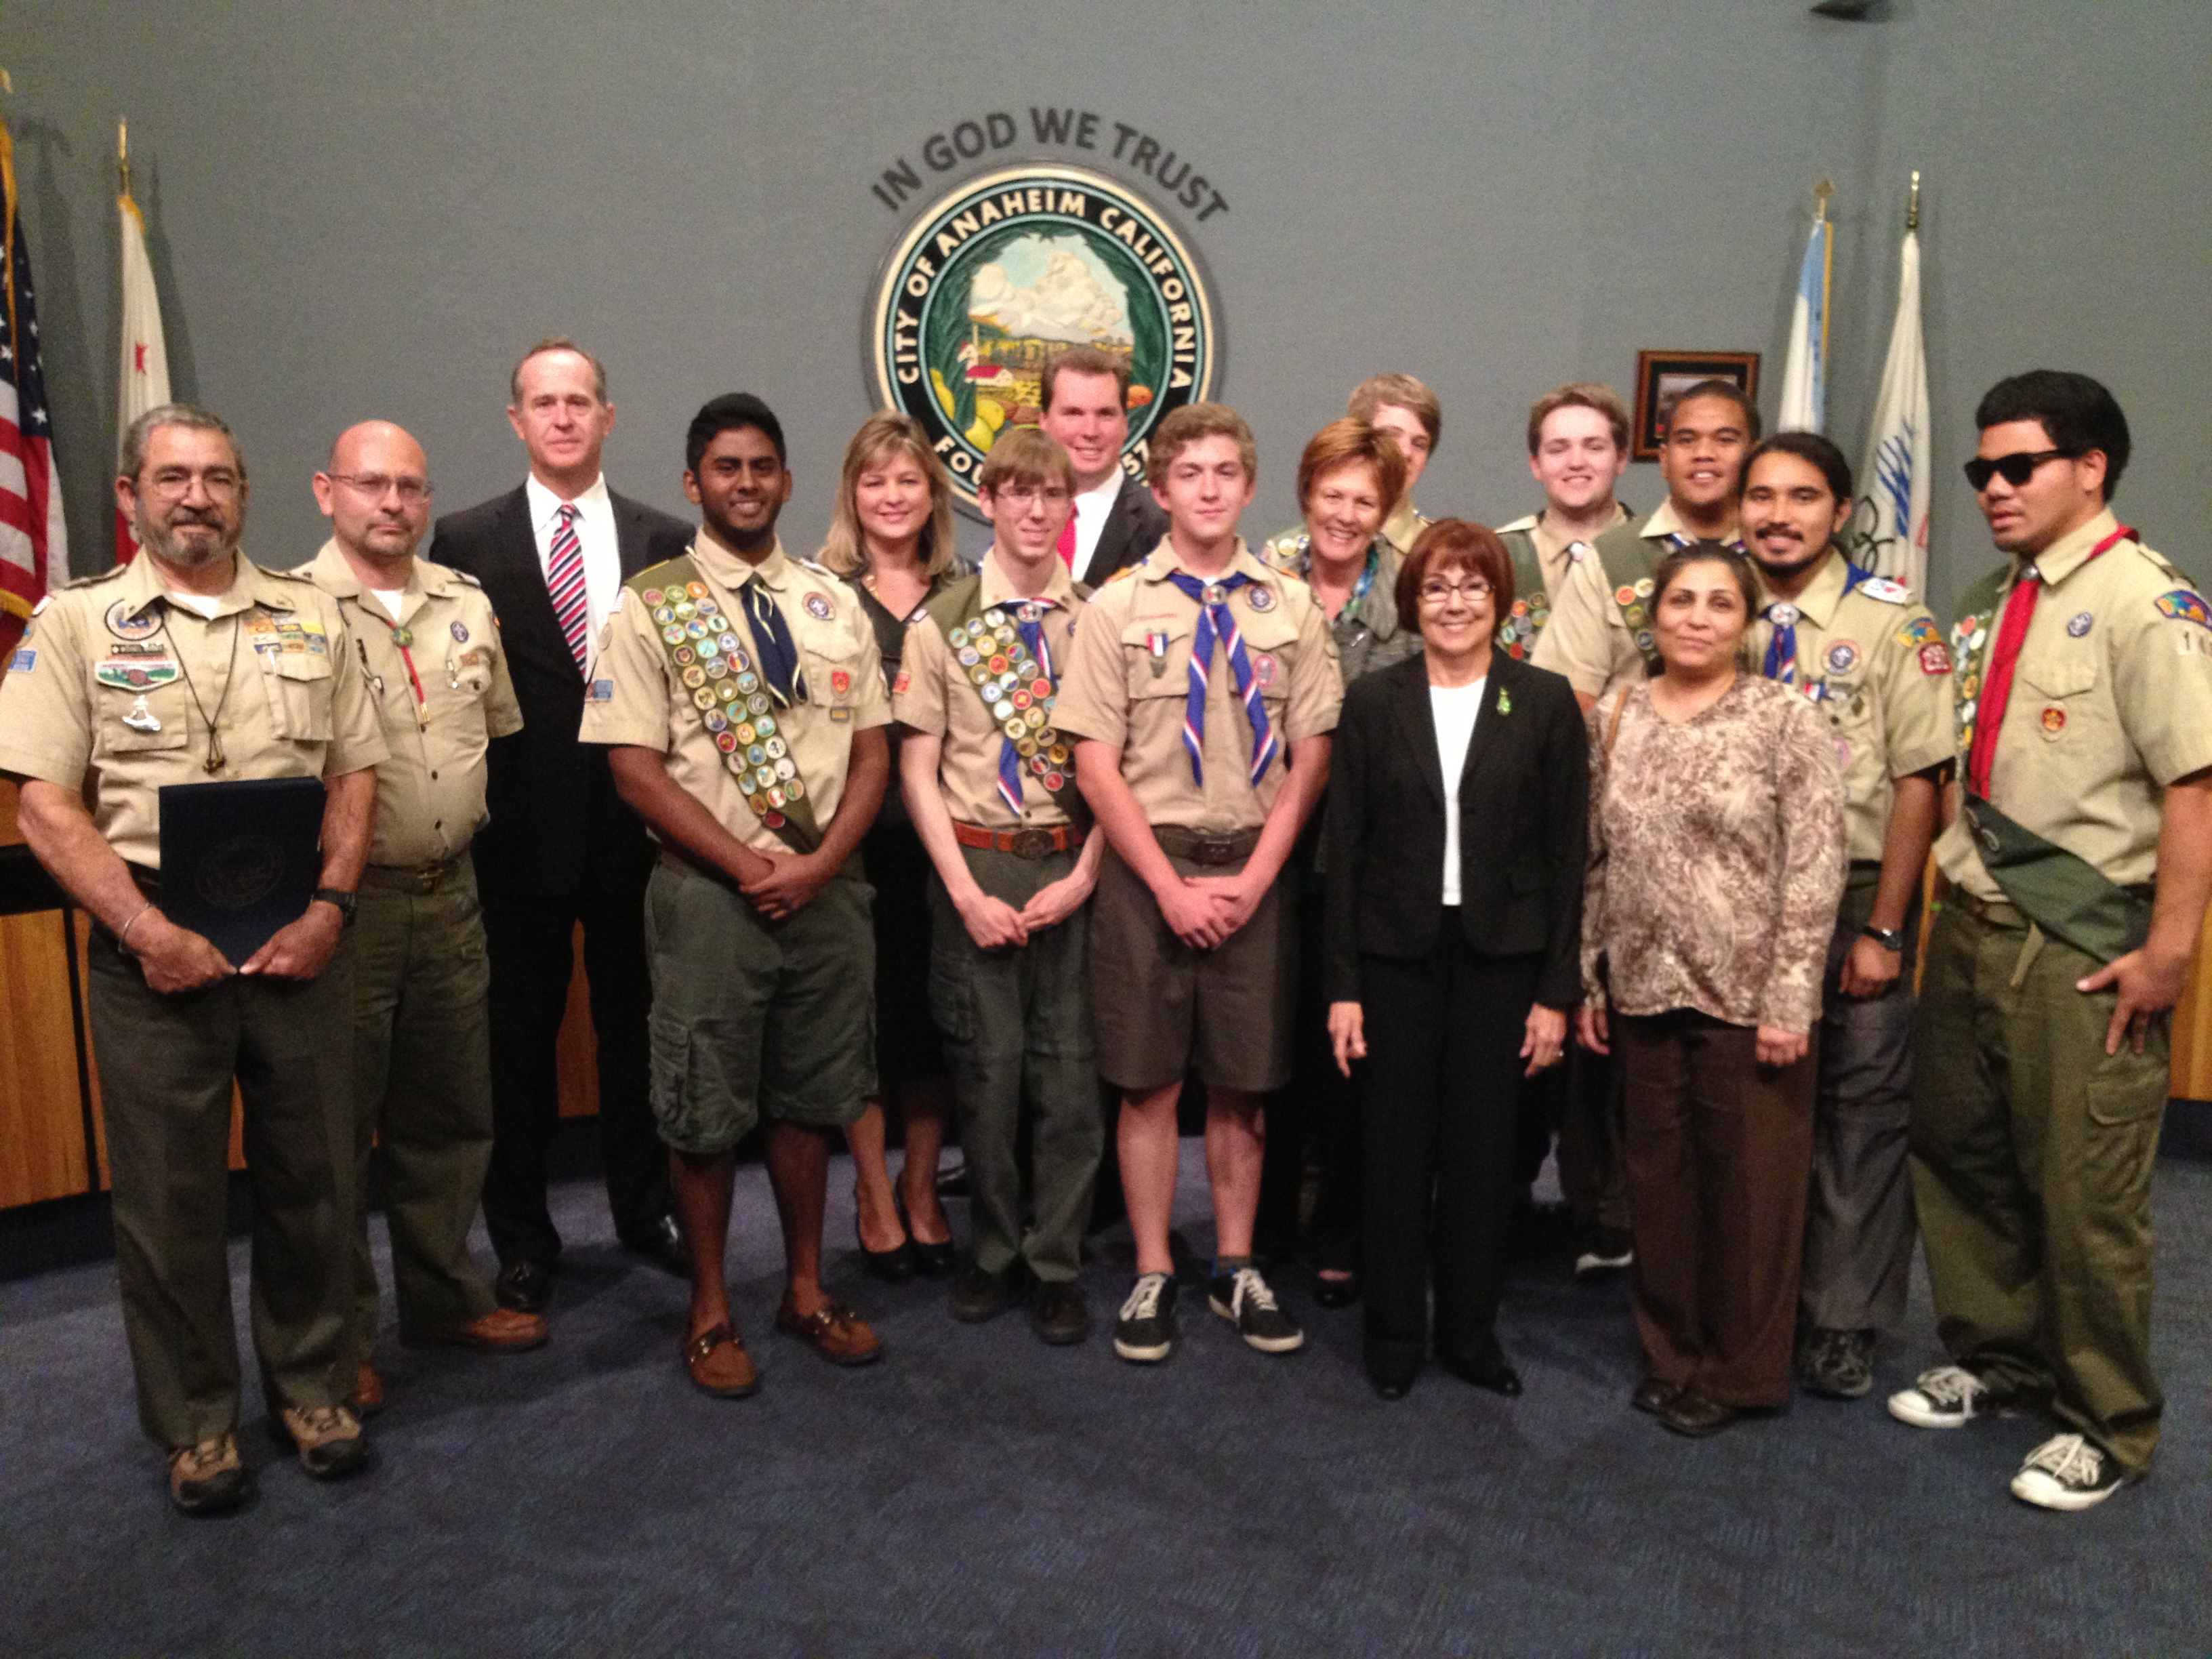 Group picture with the boy scouts, their leader, and the Council